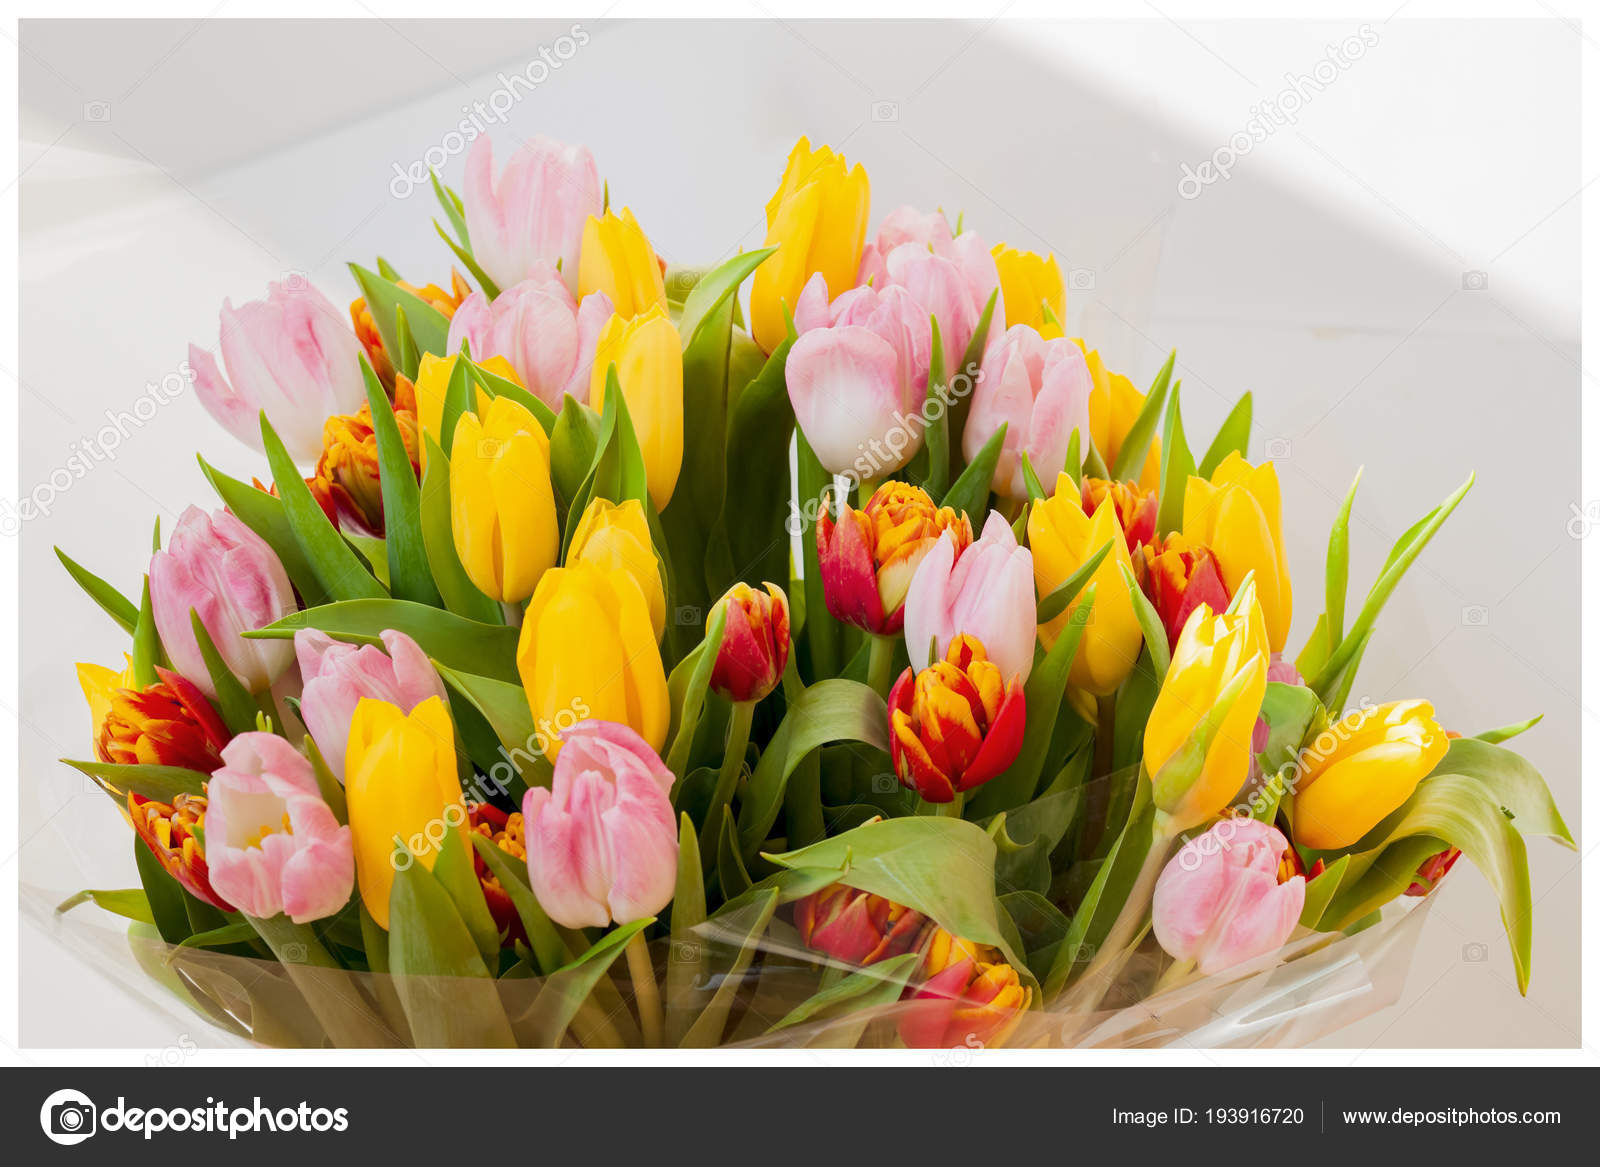 Flowers tulips bouquet colored bouquets of tulips greeting card flowers tulips bouquet colored bouquets of tulips greeting card for all occasions izmirmasajfo